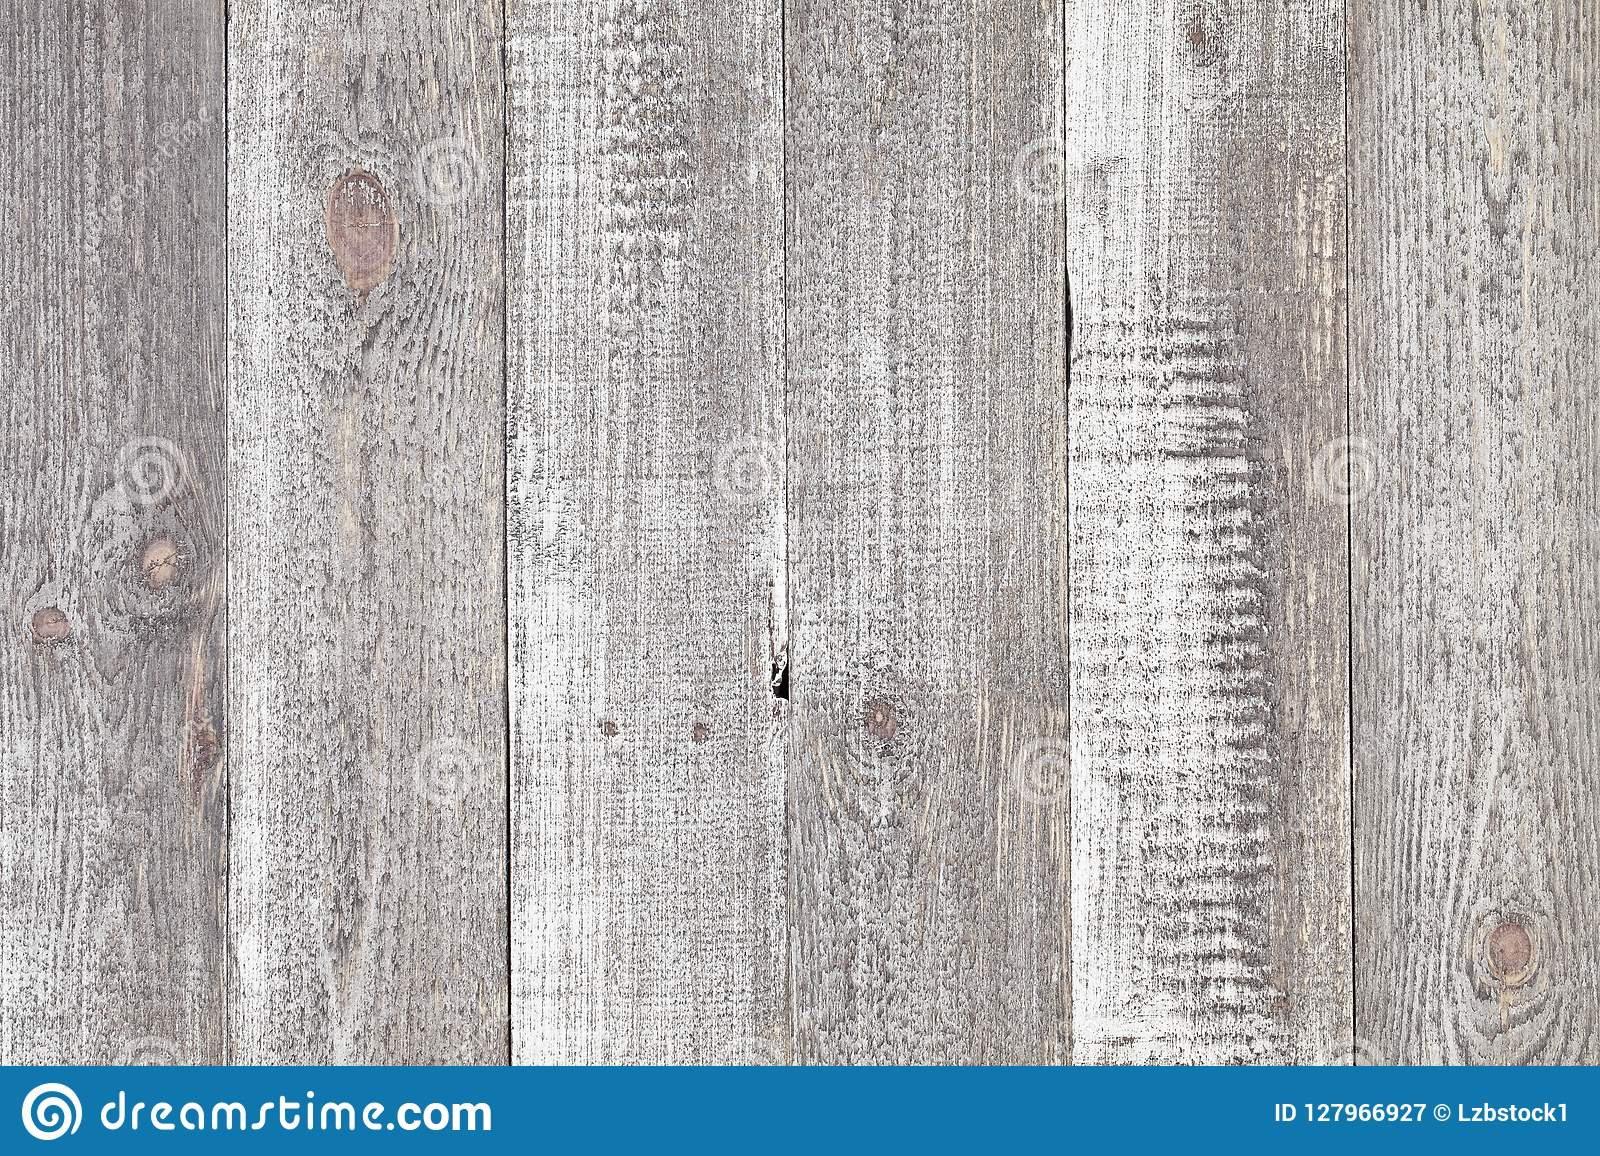 Grey wooden table background. Close up of rustic grey wood table